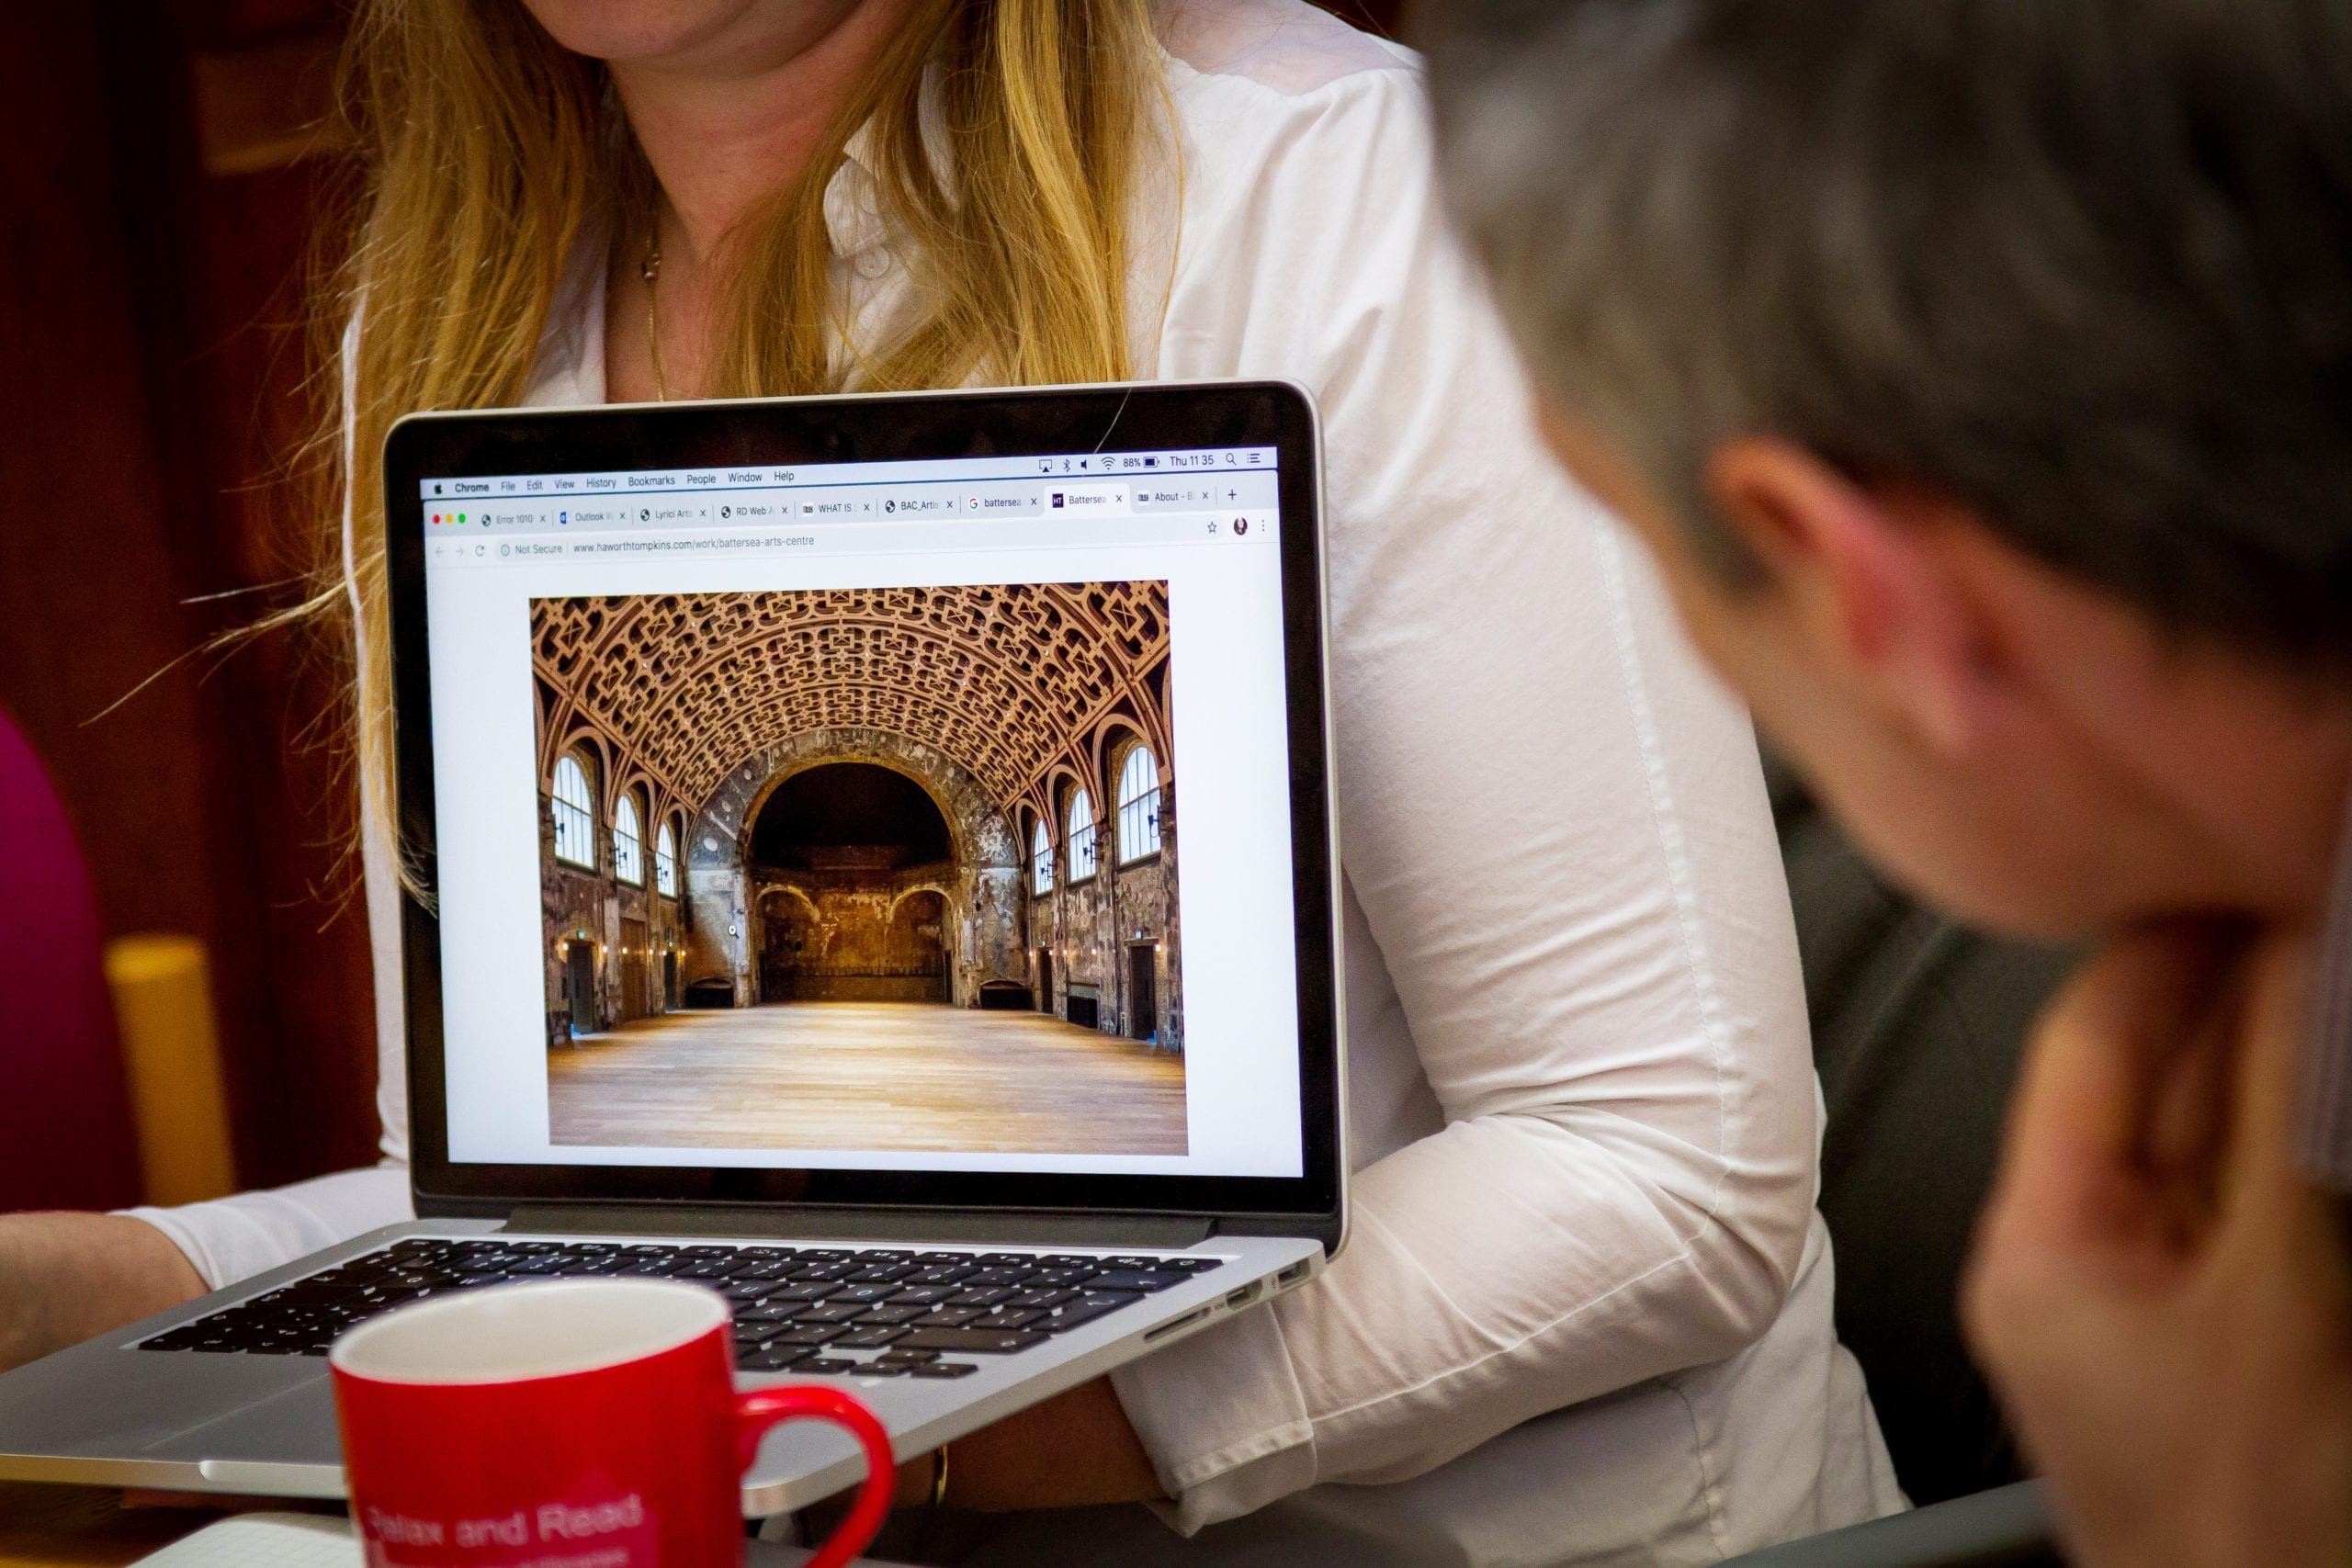 A woman showing people a photo of a building on her laptop